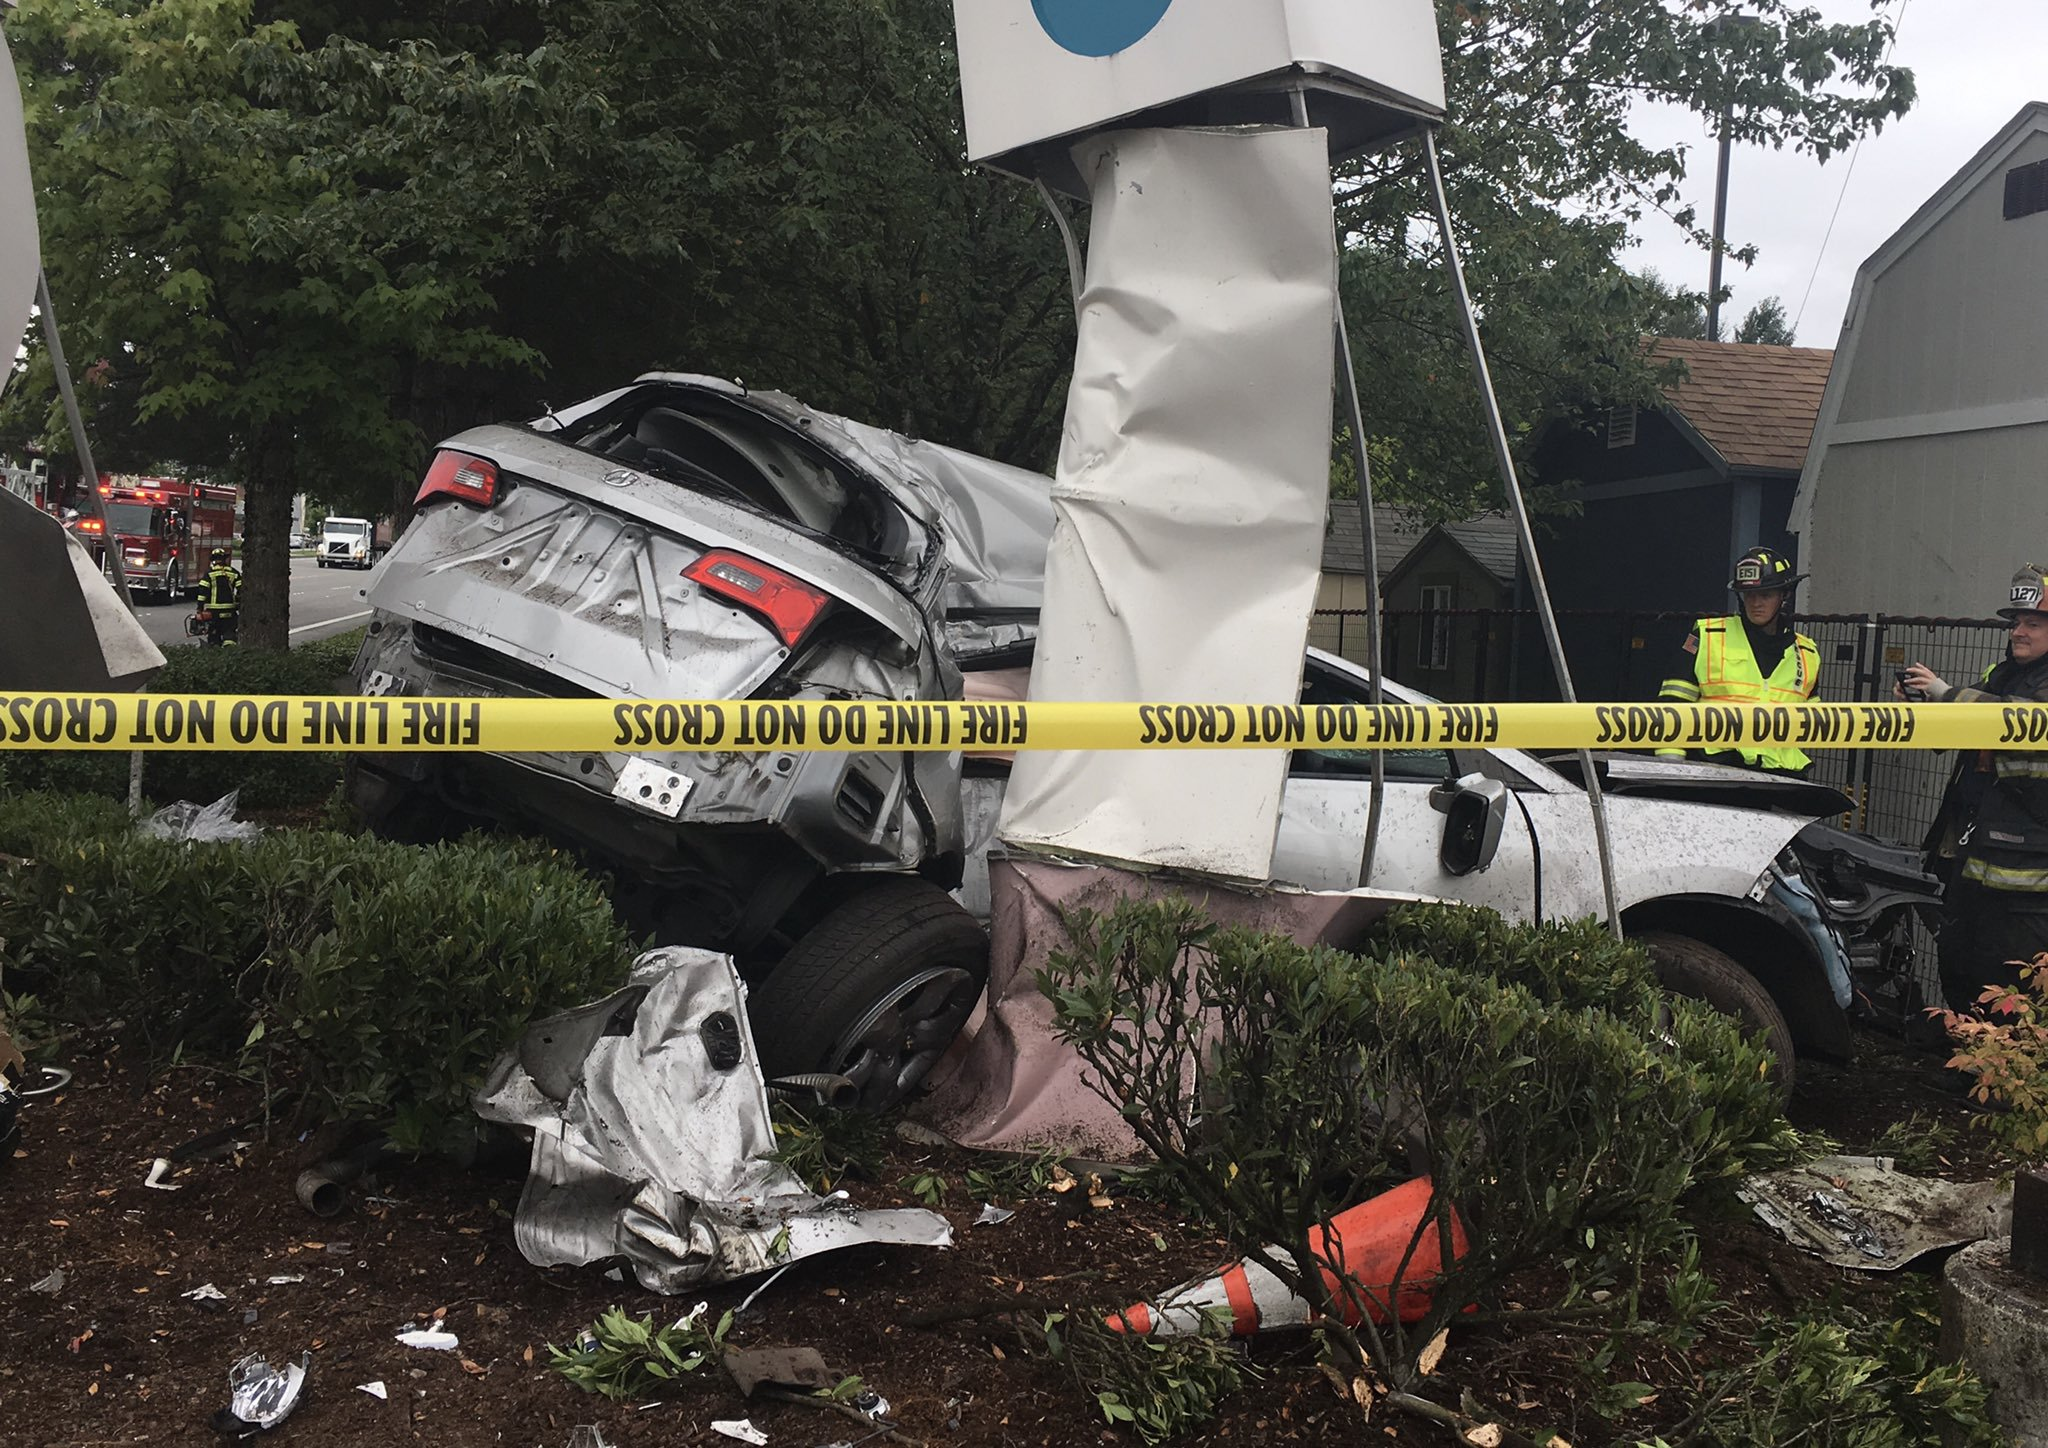 Two drivers hospitalized after crash outside Home Depot in Bothell